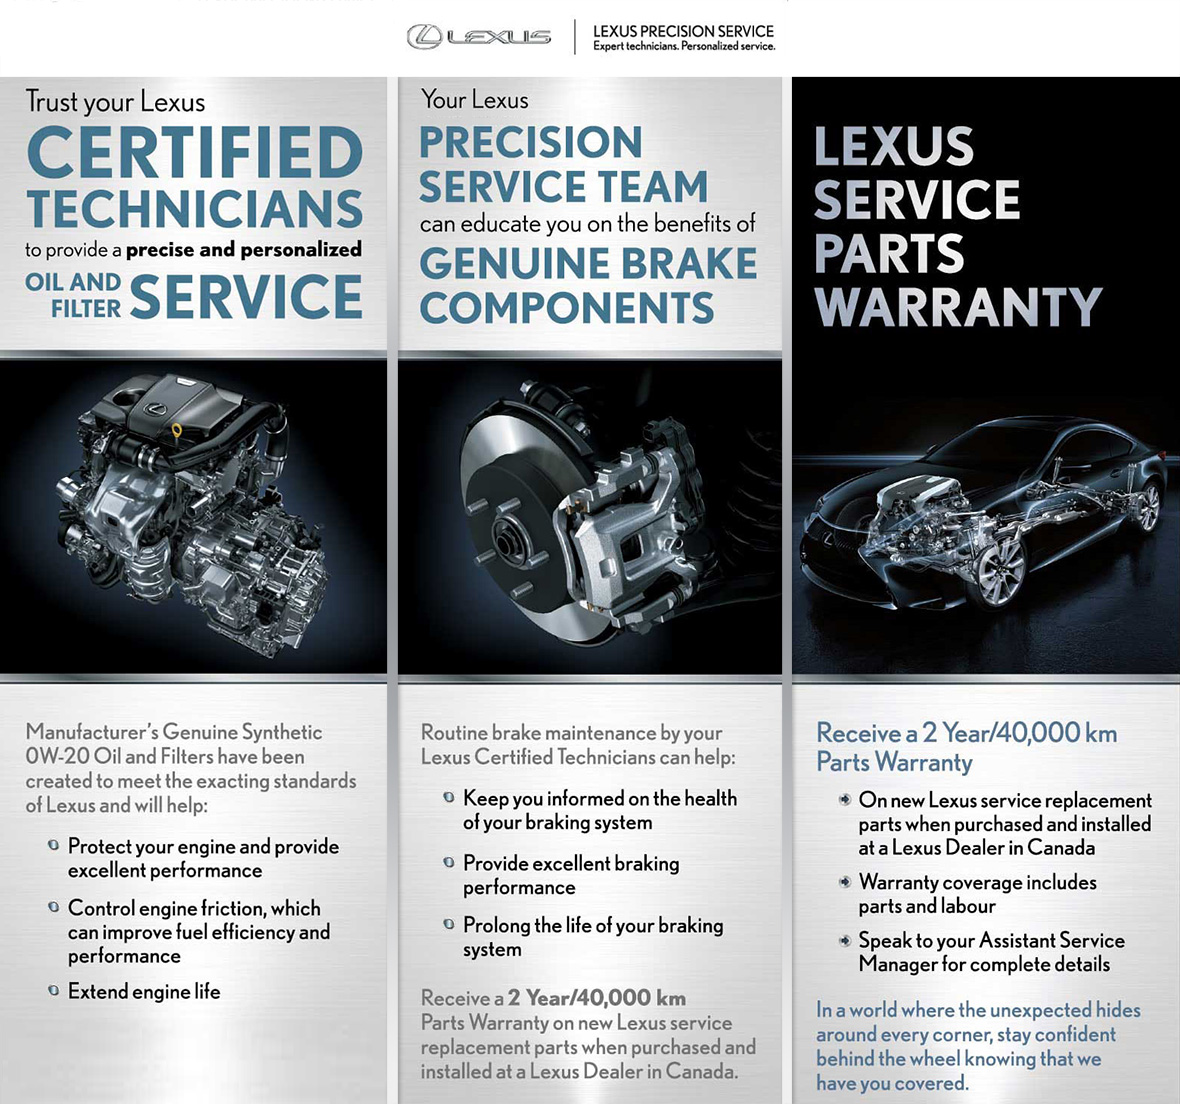 Benefits of the Lexus Precision Service Team and Lexus Service Parts Warranty